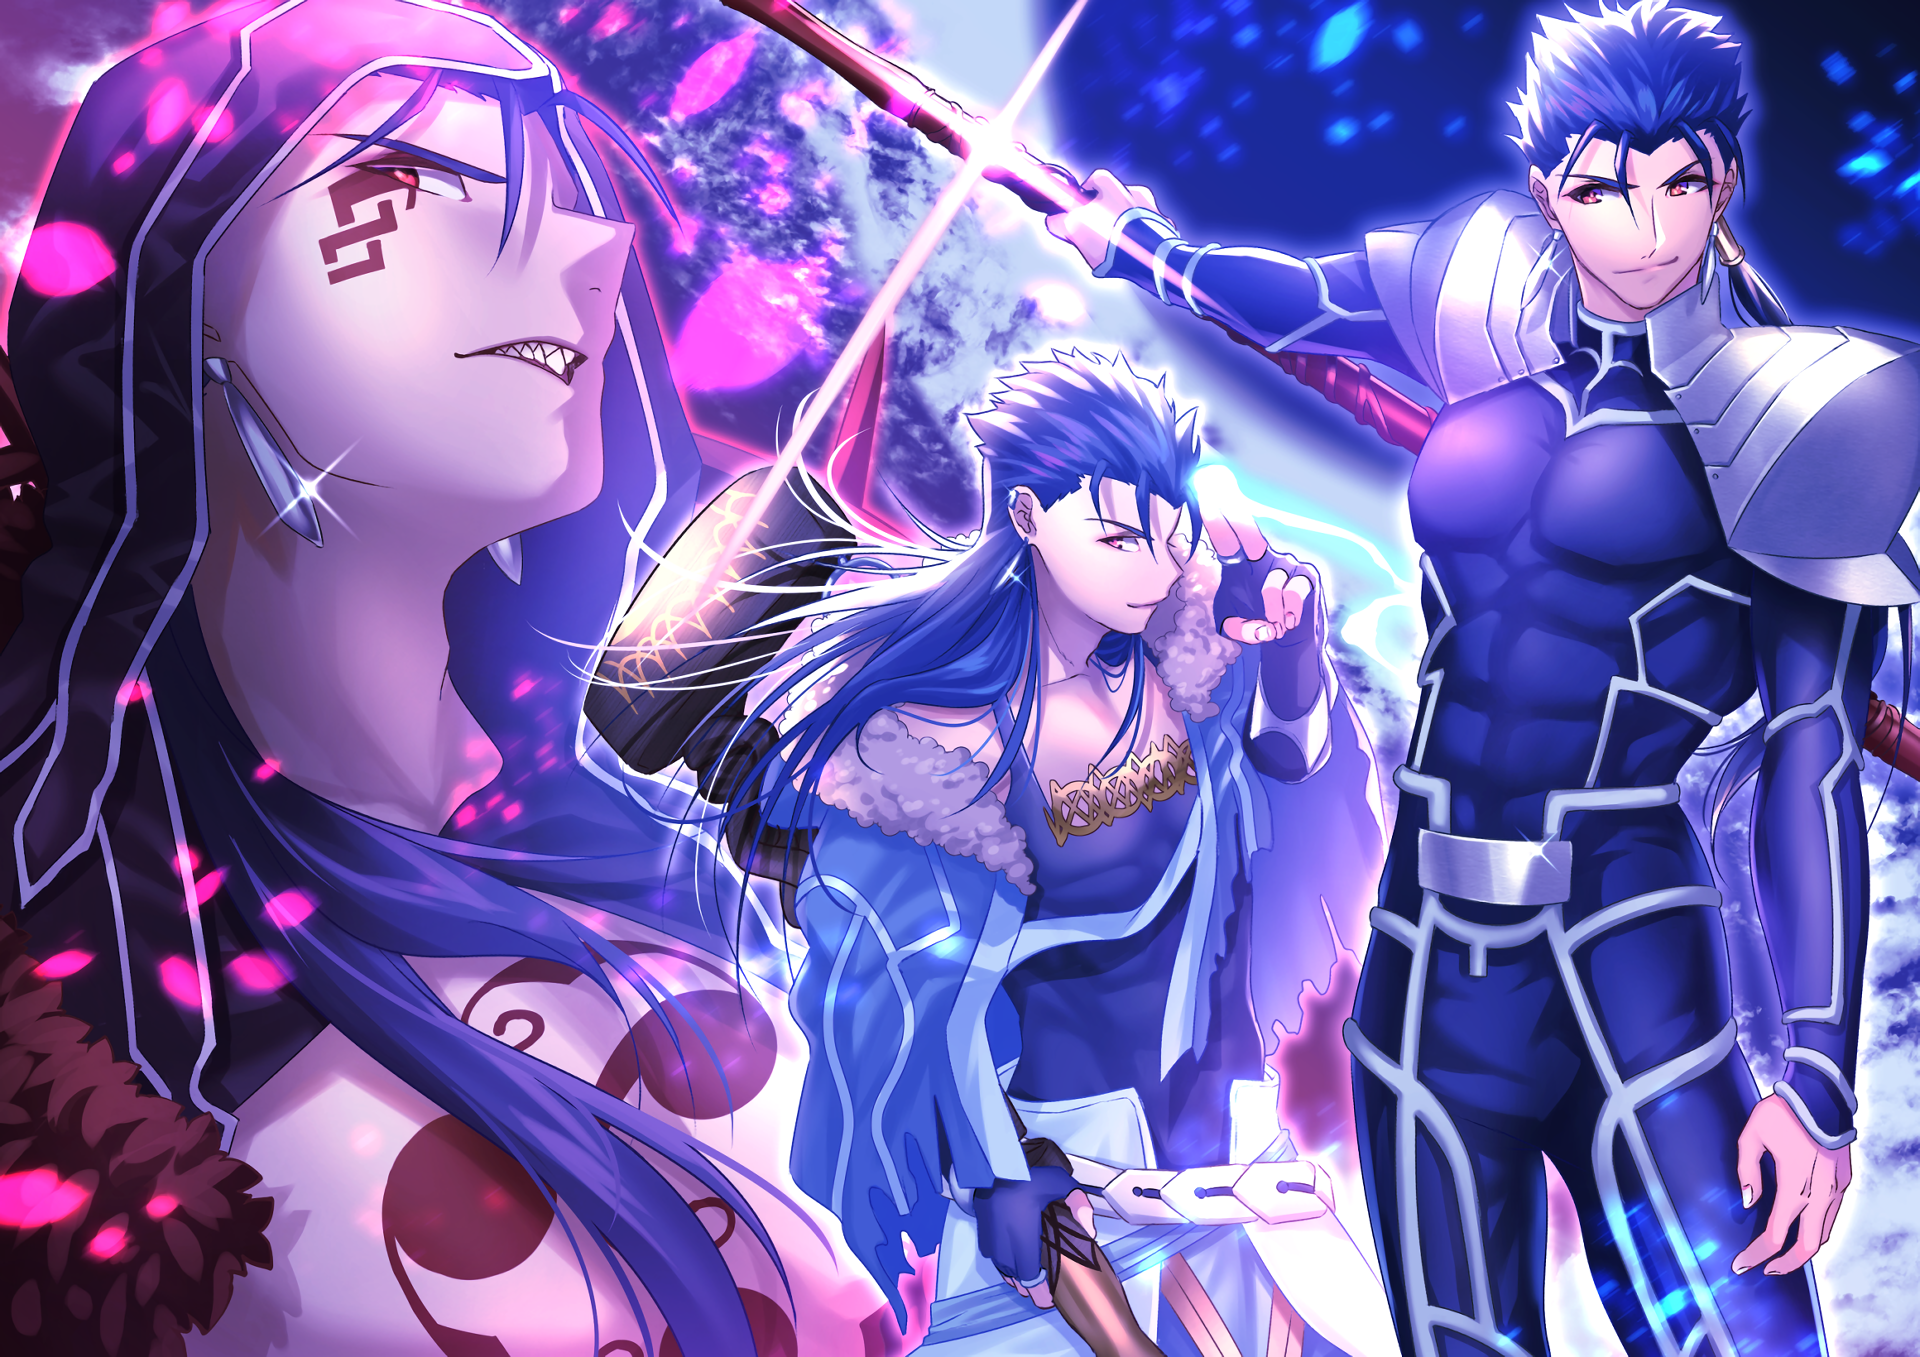 Fate grand order hd wallpaper background image 1920x1357 id 848380 wallpaper abyss - Fate grand order lancer wallpaper ...